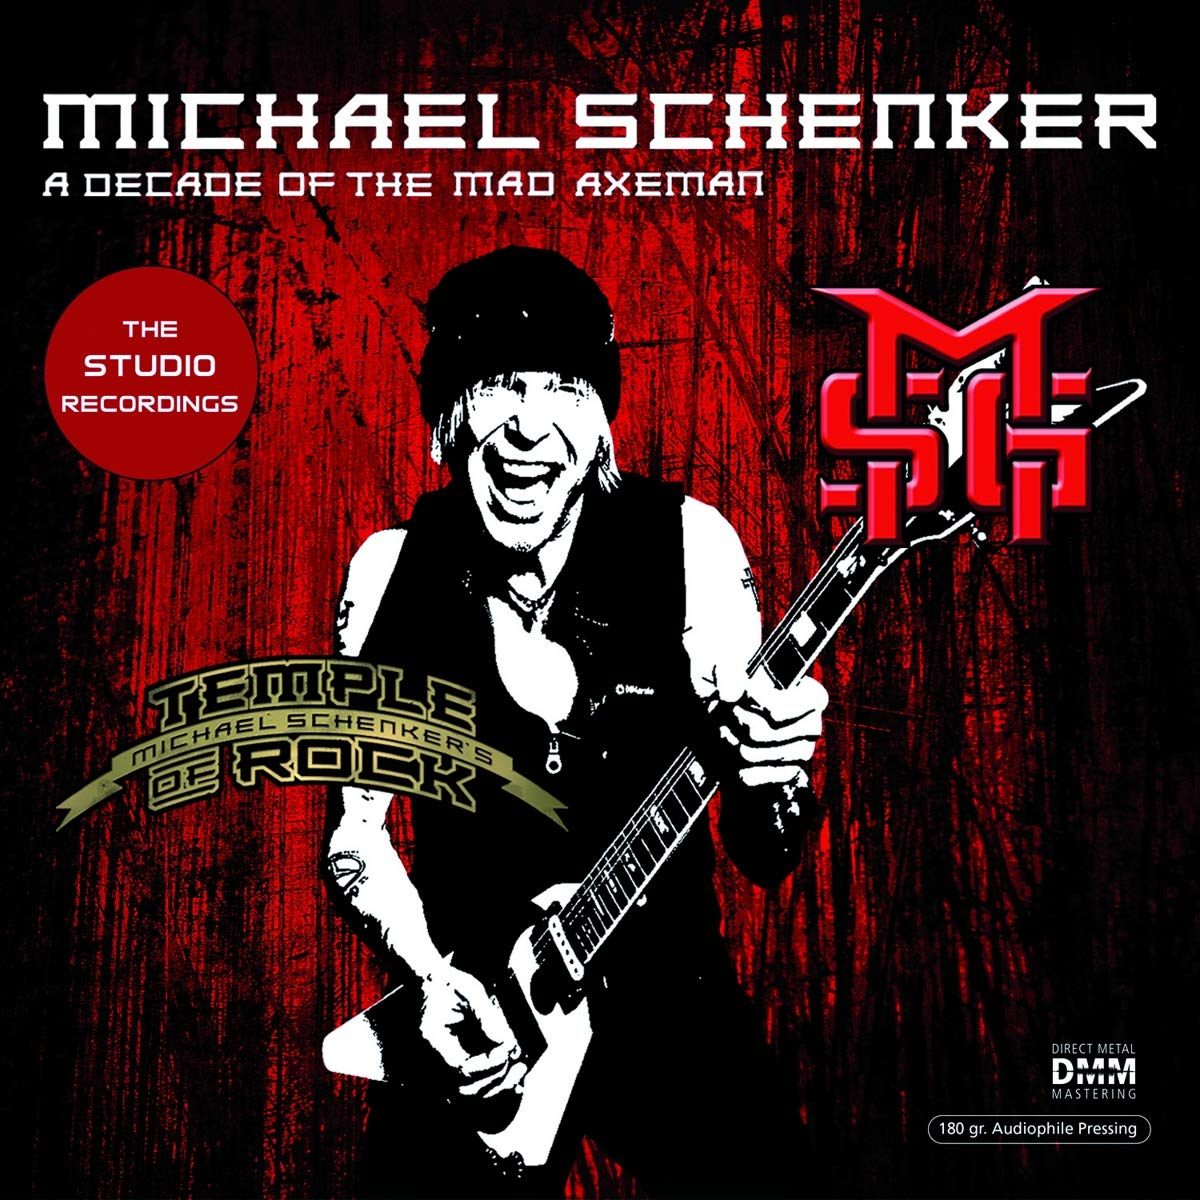 Michael Schenker - Decade Of The Mad Axeman The Studio Recordings